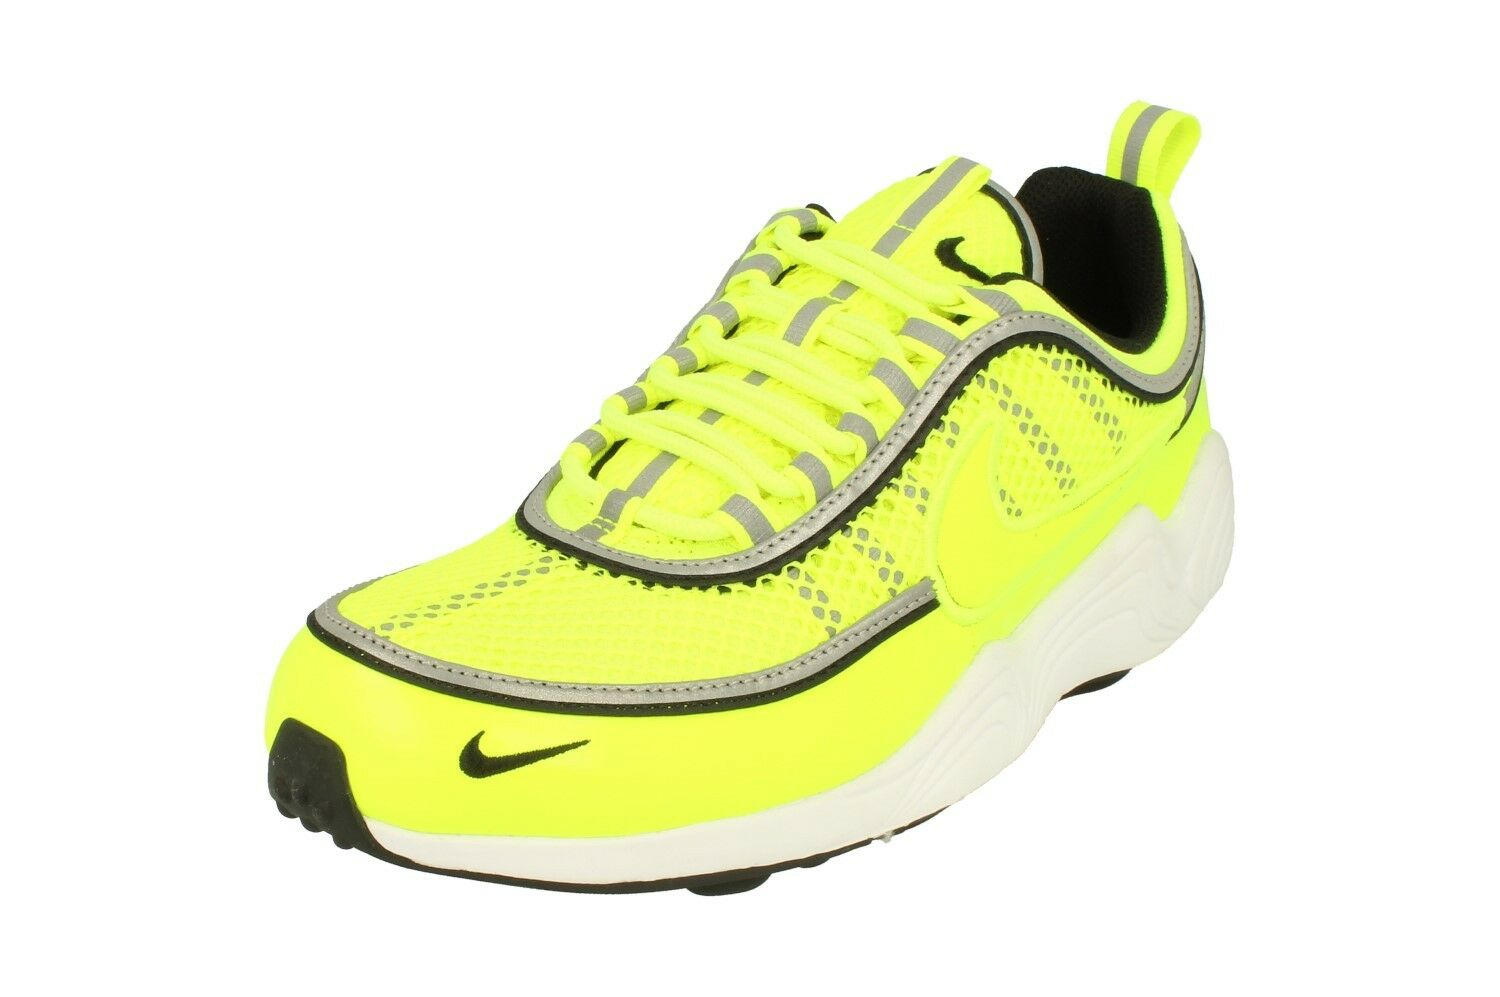 Nike Air Zoom Spiridon 16 Mens Running Trainers 926955 Sneakers Shoes 700